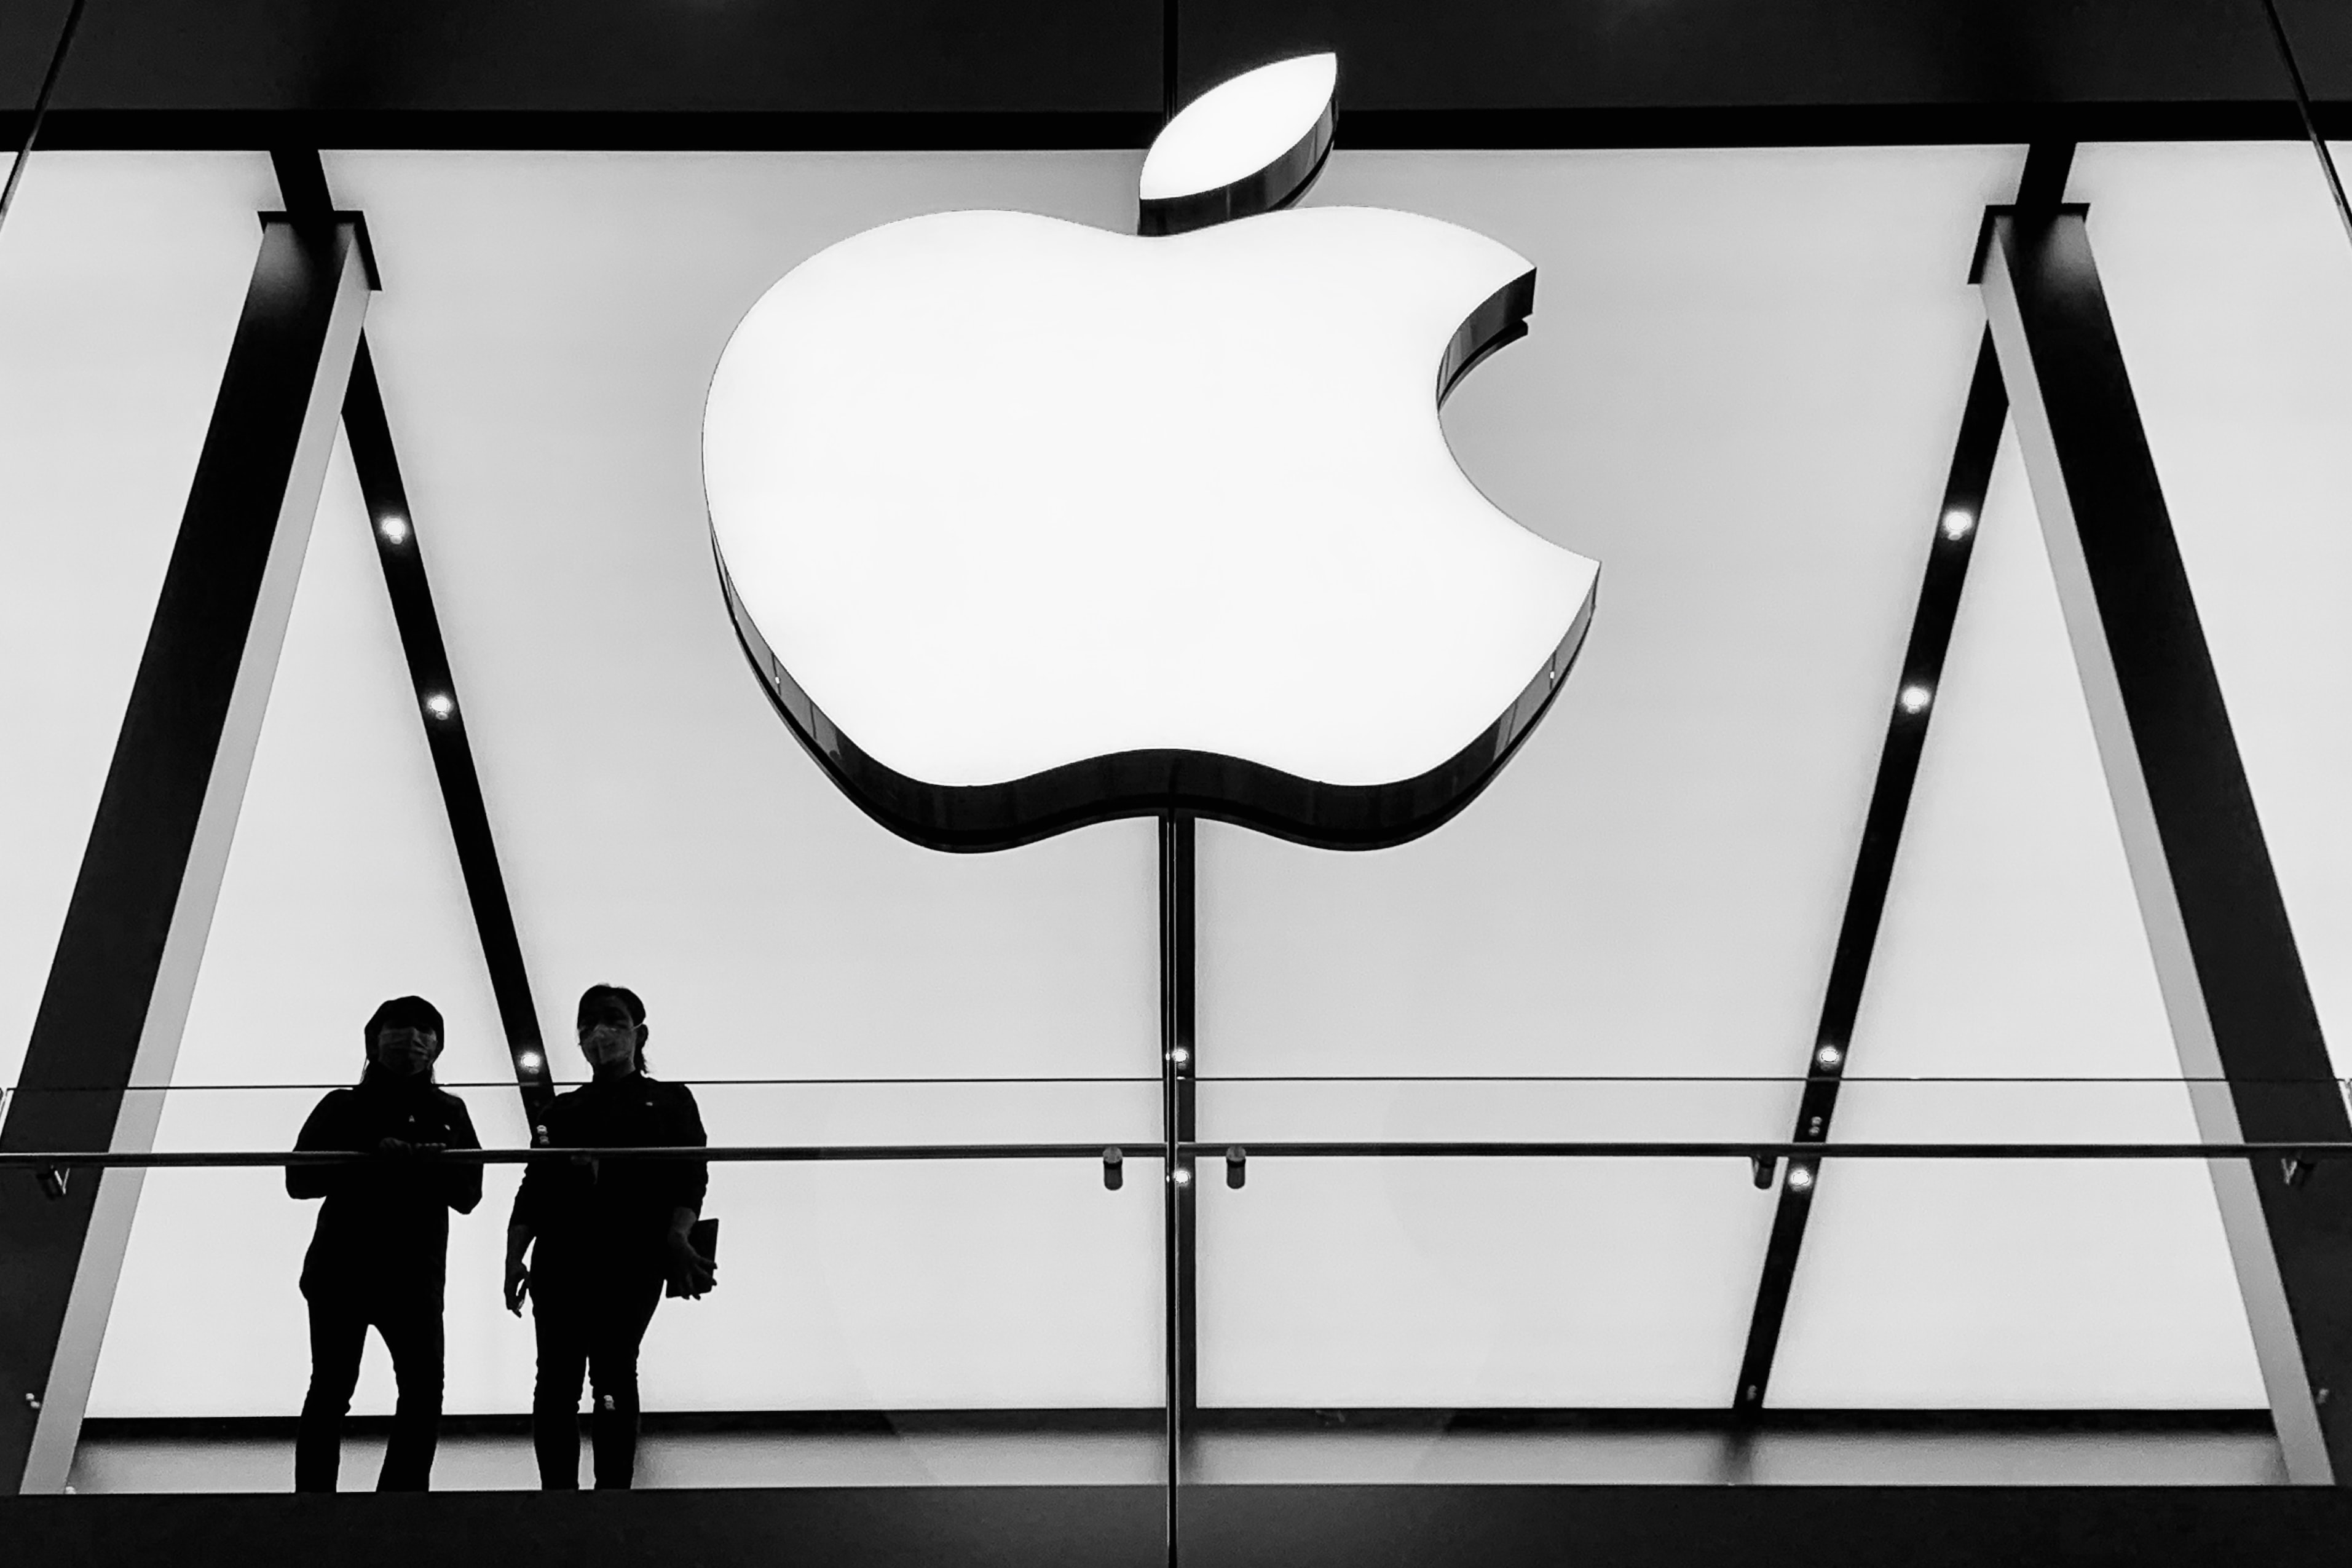 US District Court Rules Apple Cannot Block Alternative Payment Options